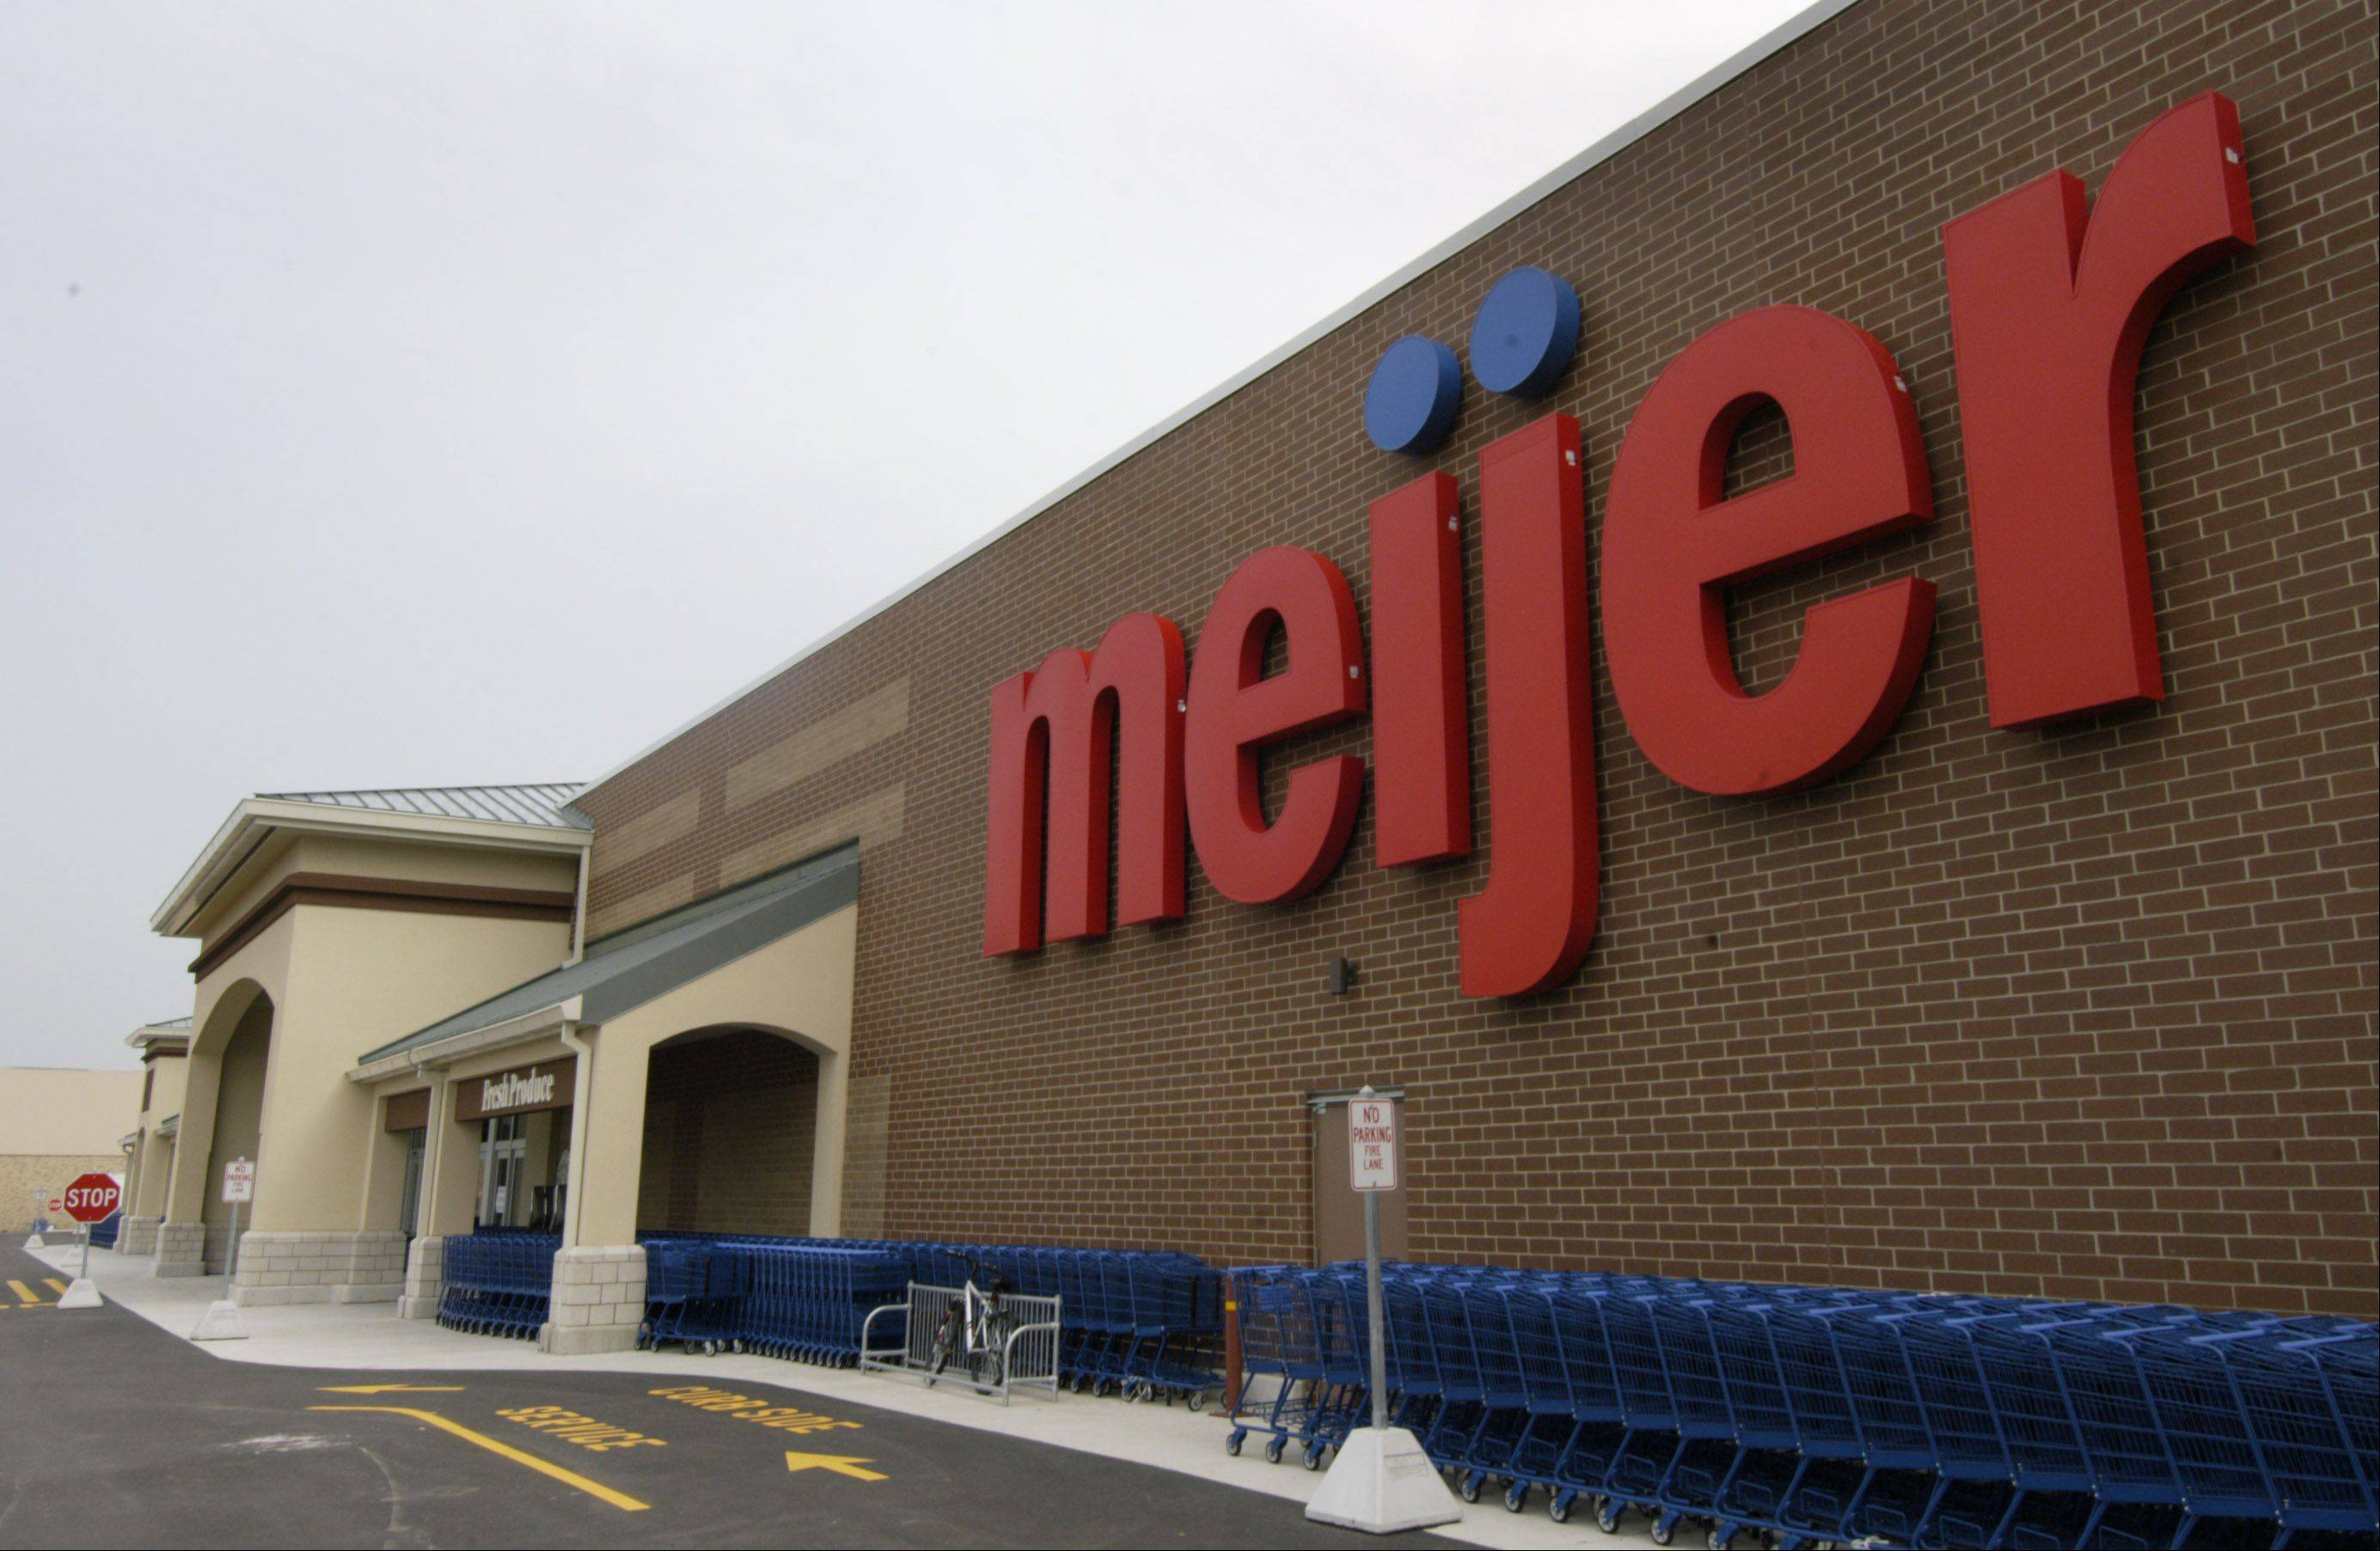 The Meijer in Rolling Meadows is one of several Chicago area Meijer locations that will be hiring more than 900 temporary employees for the upcoming holiday season. The company also plans to add employees in Algonquin, Aurora, Bloomingdale, Elgin, McHenry and St. Charles.